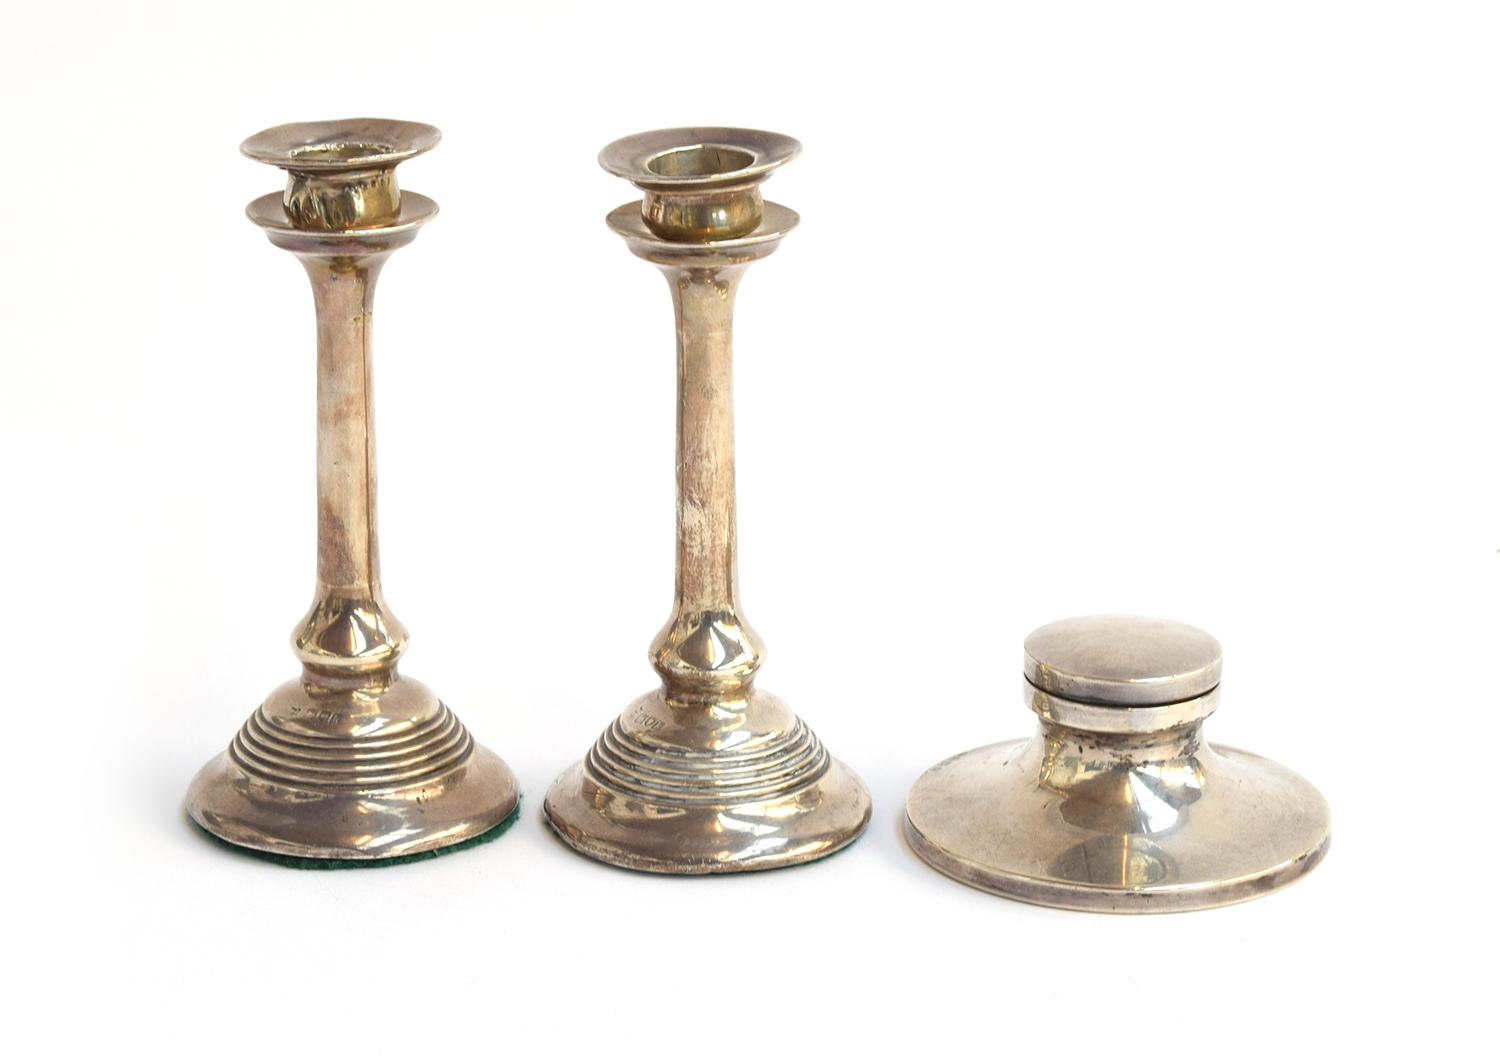 A small pair of silver candesticks with removeable bobeches, by Josiah Williams & Co, London 1905,